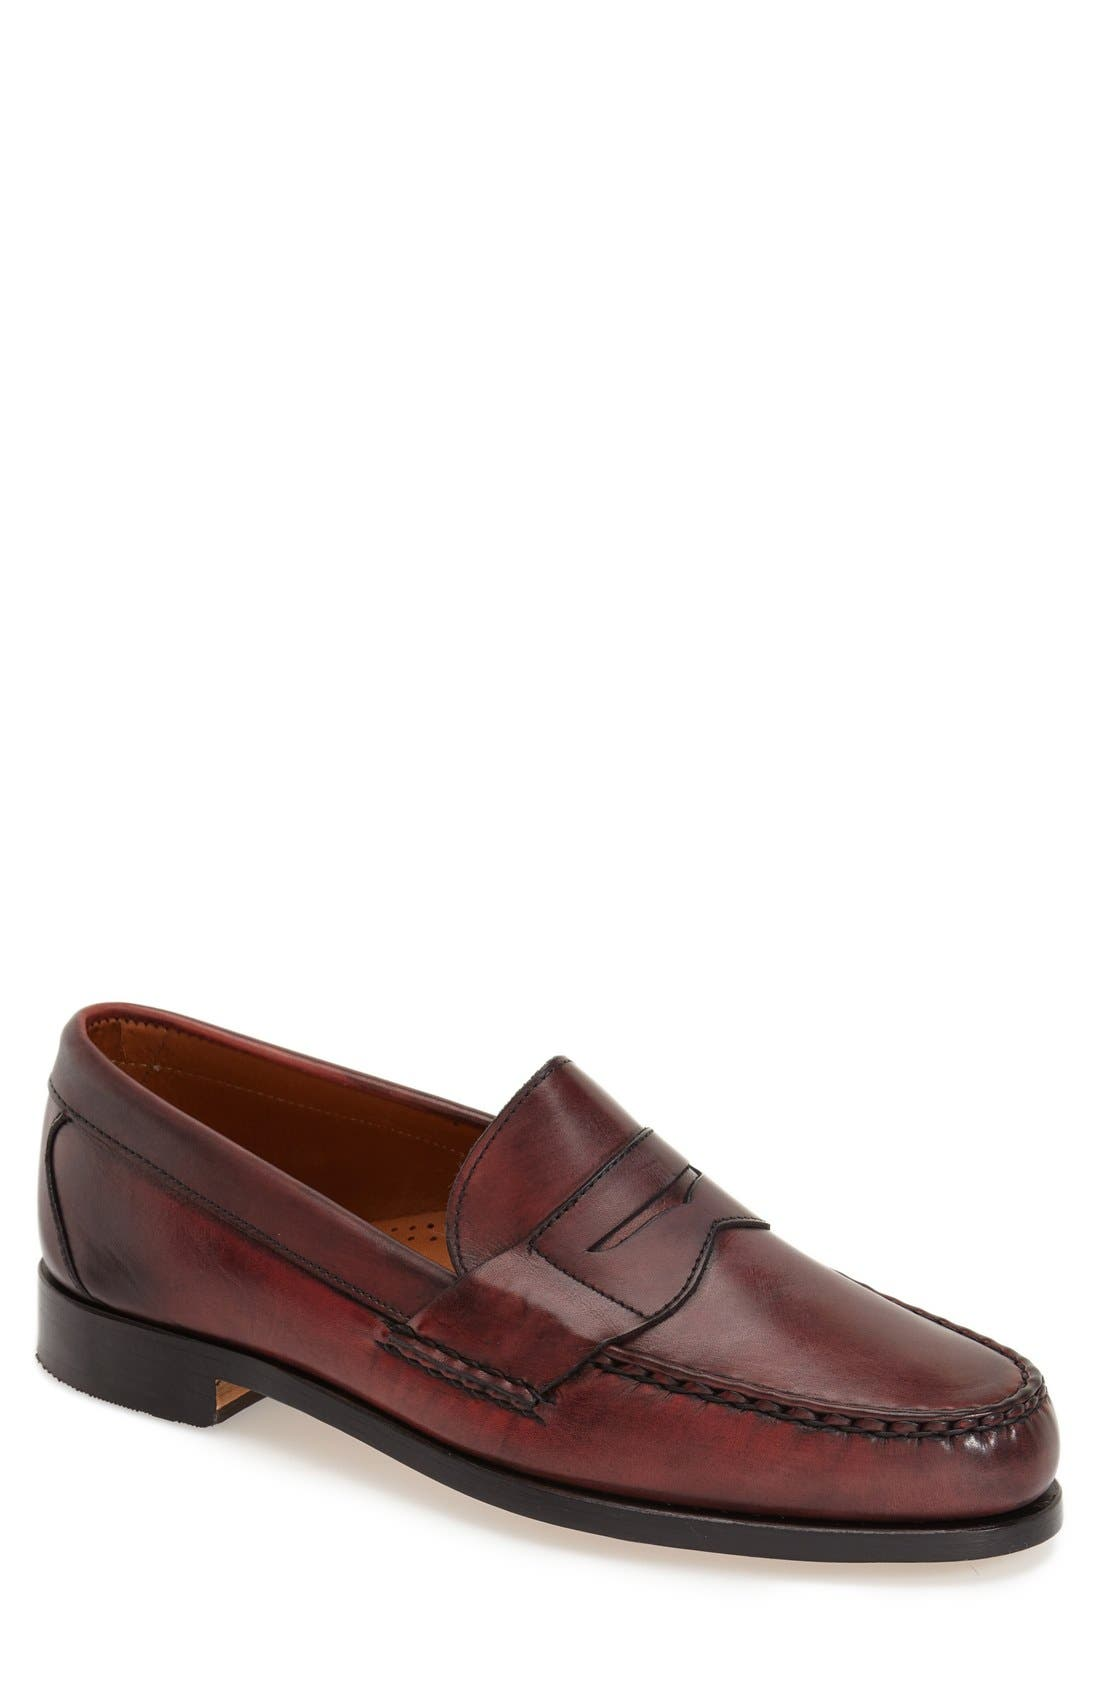 Main Image - Allen Edmonds 'Cavanaugh' Penny Loafer (Men)